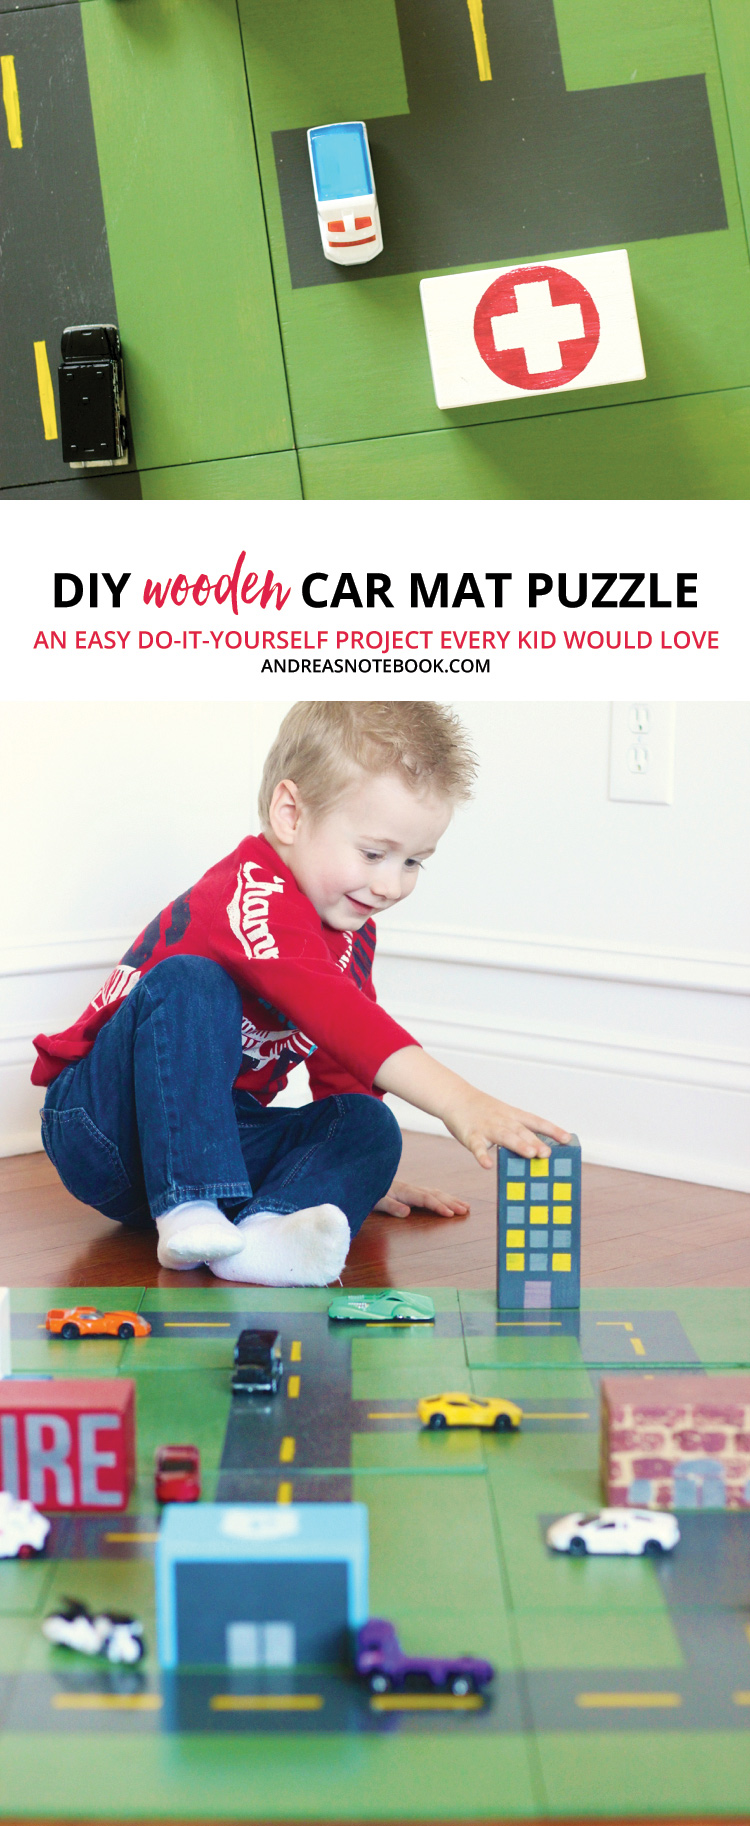 do-it-yourself wooden car play mat tutorial